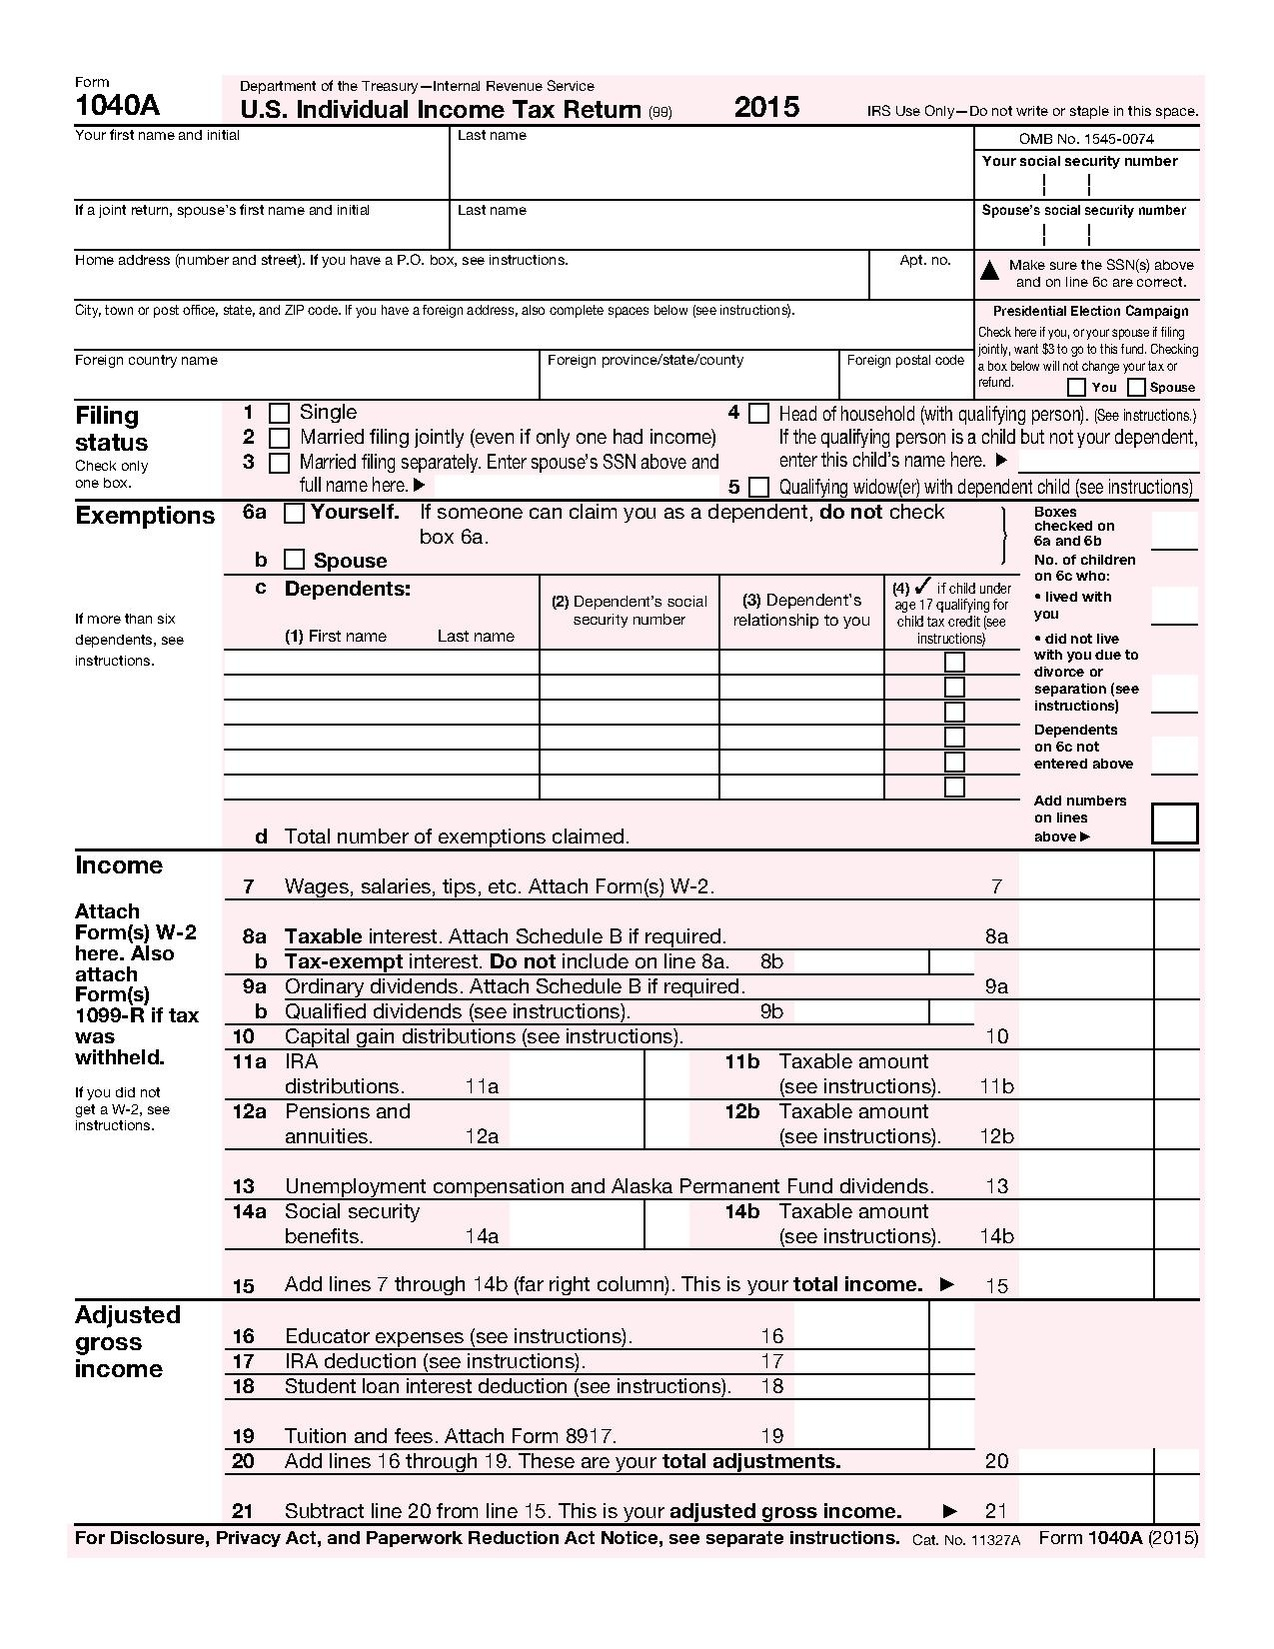 Fileform 1040a 2015pdf wikimedia commons fileform 1040a 2015pdf falaconquin